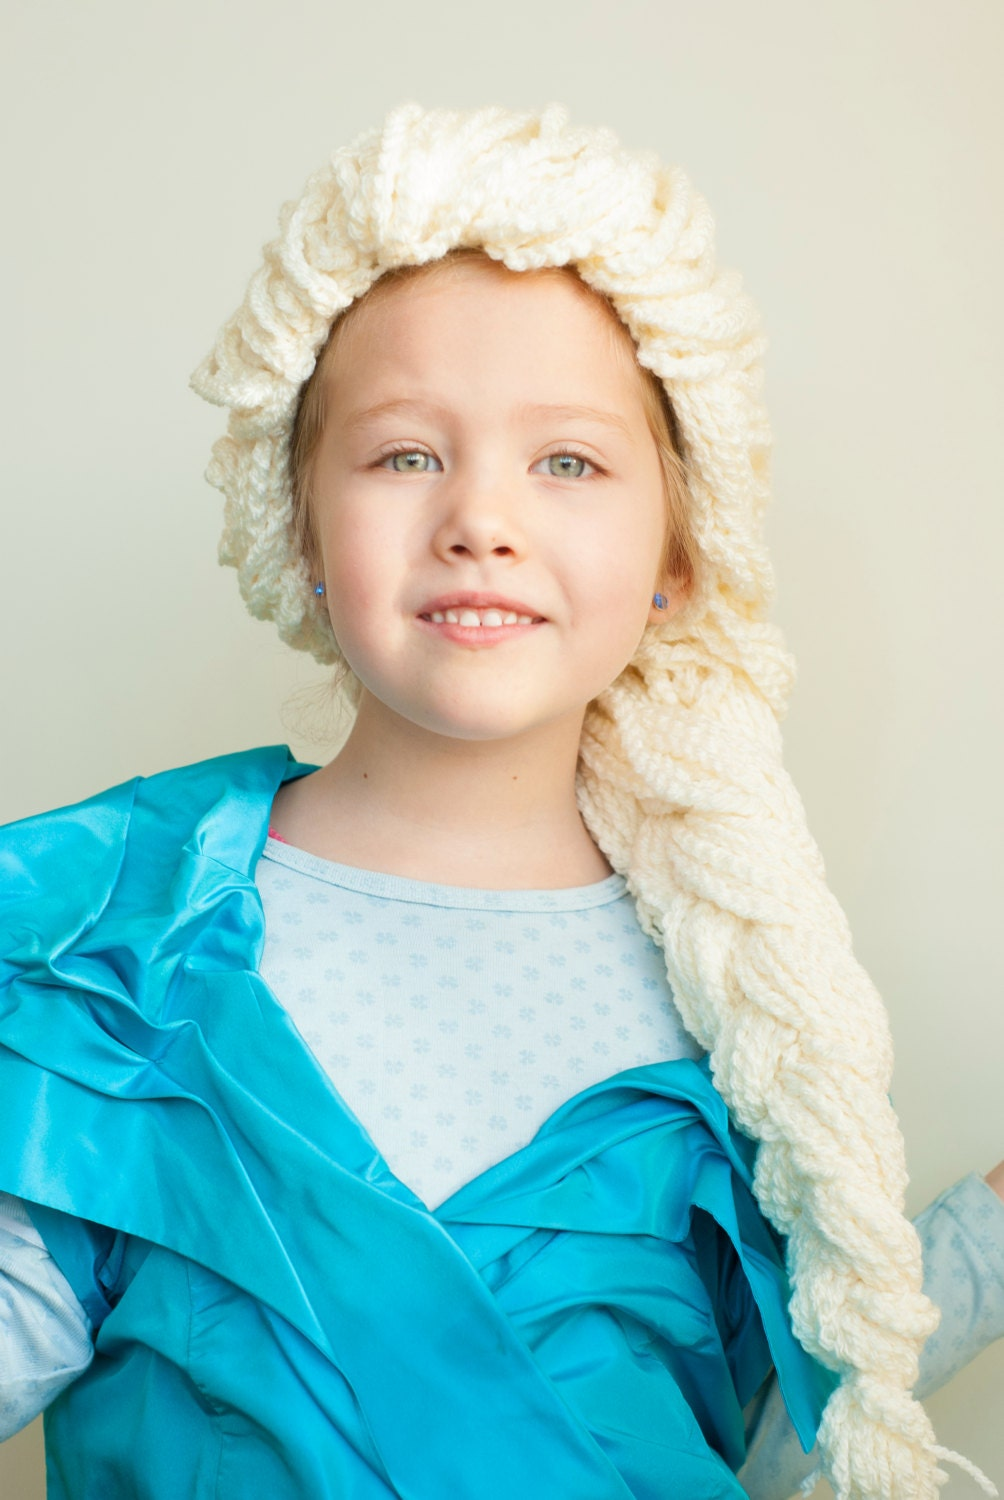 Crochet pattern Elsa hair wig to dress up Frozen inspired